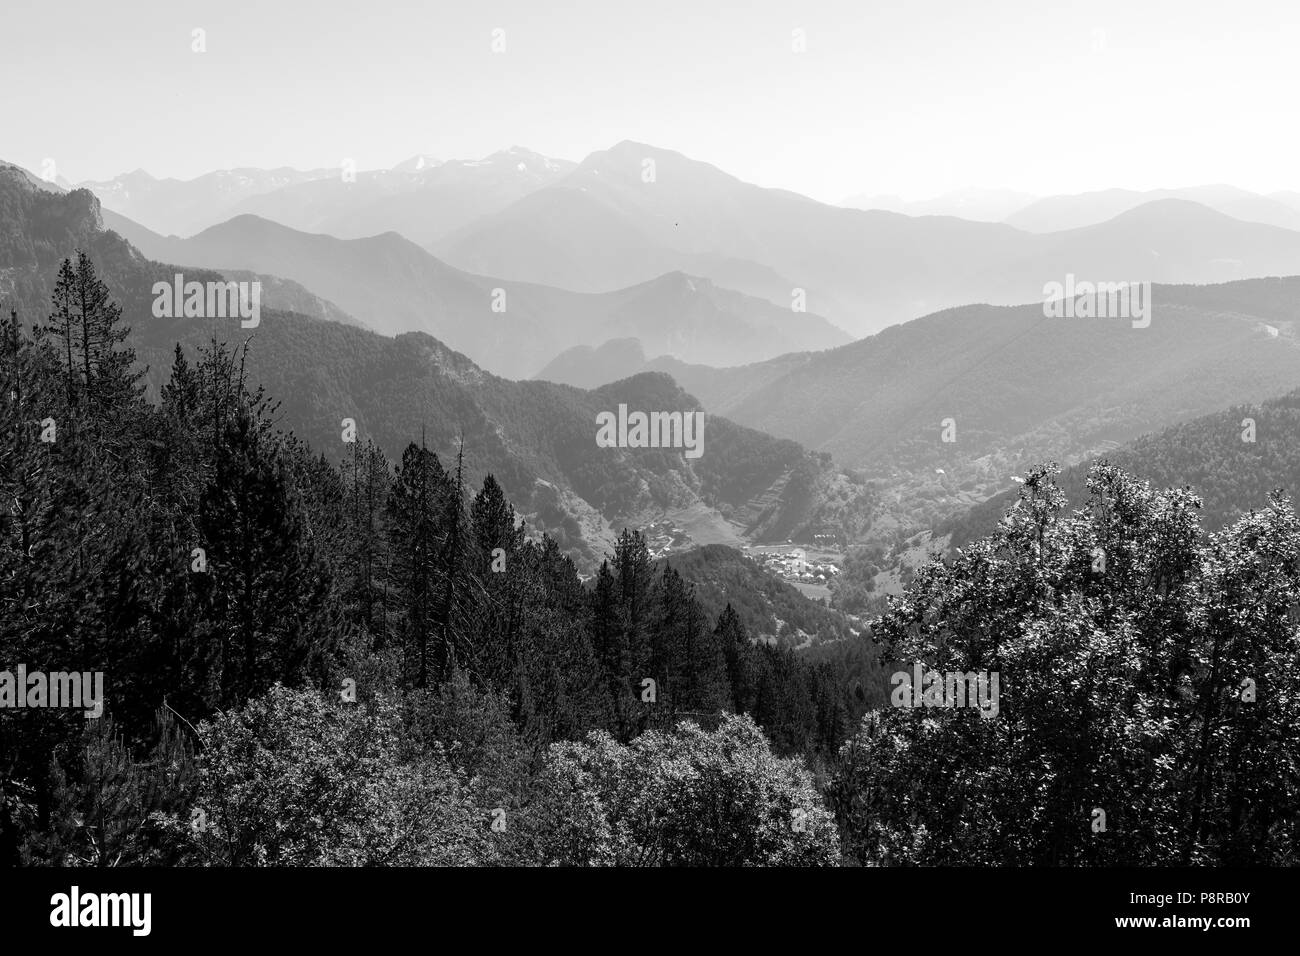 Landscape on the Coll de la botella in area Pal Arisal in Andorra - Stock Image